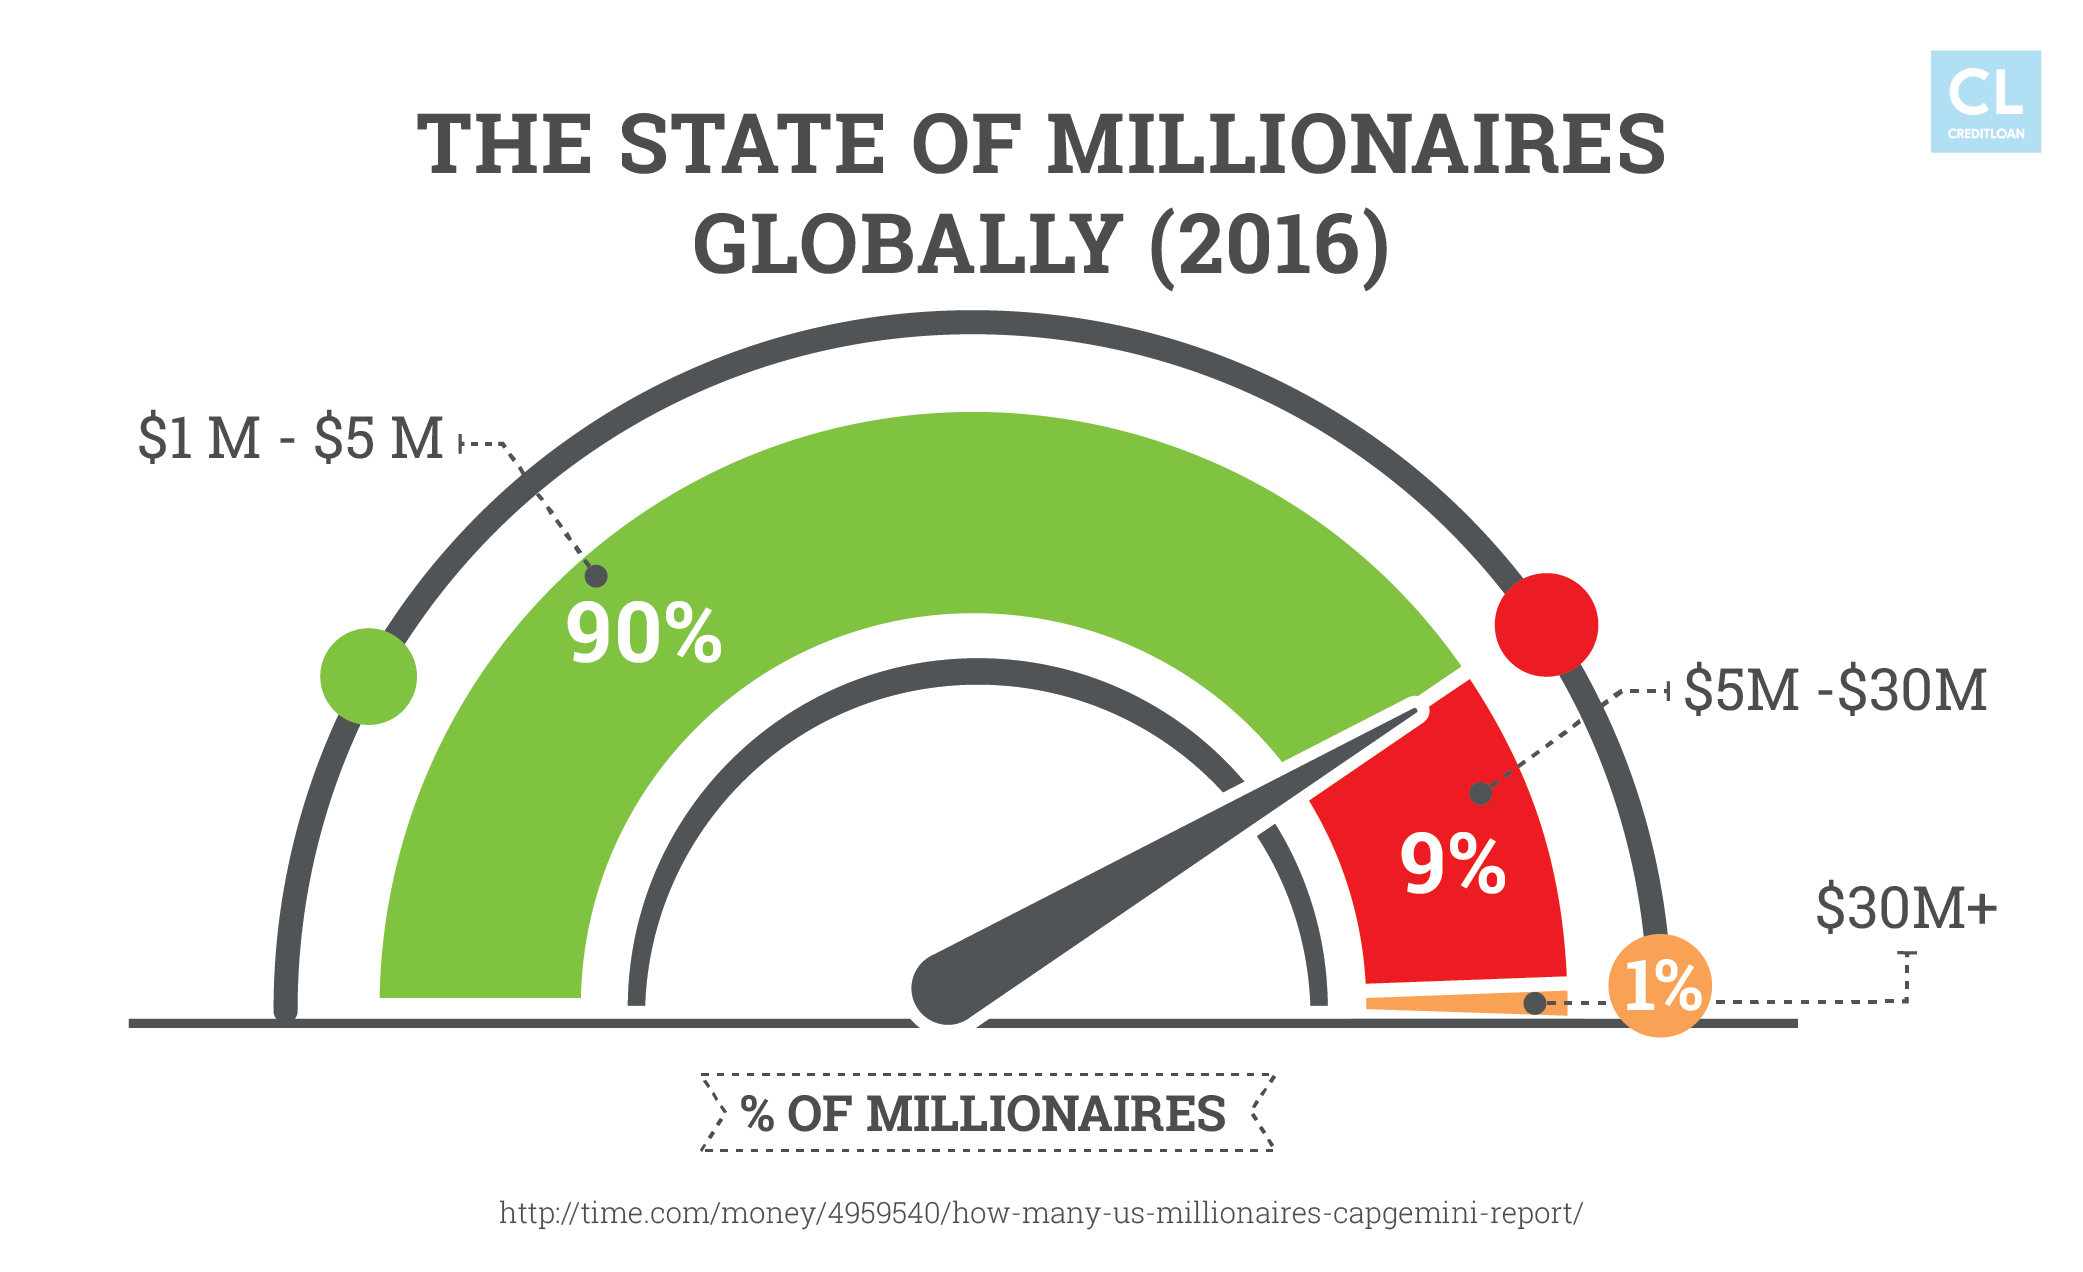 The State of Millionaires Globally (2016)